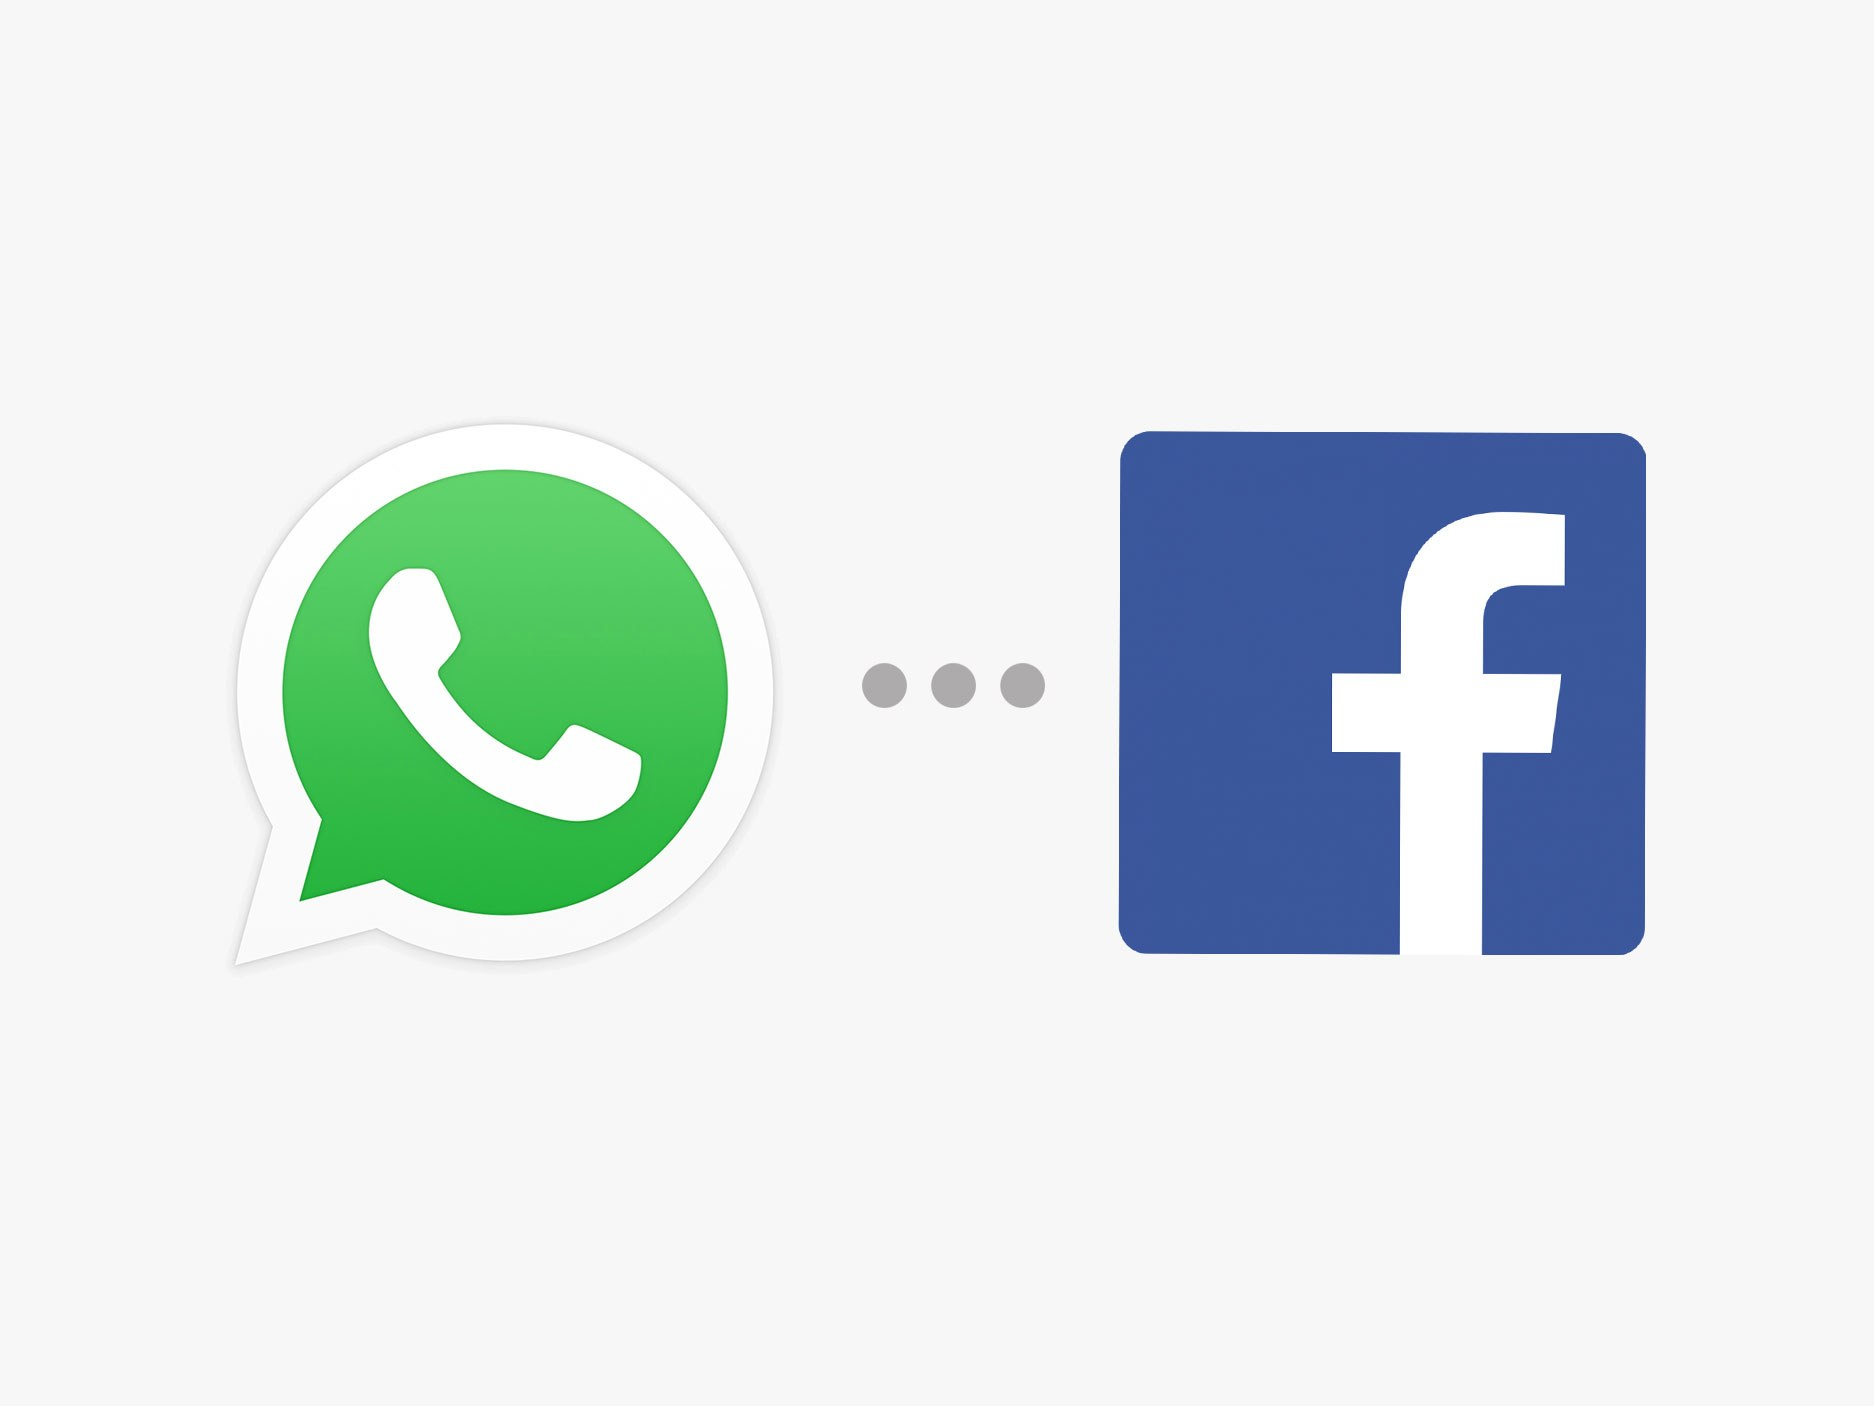 Click-to-WhatsApp: nova integração do Facebook com WhatsApp